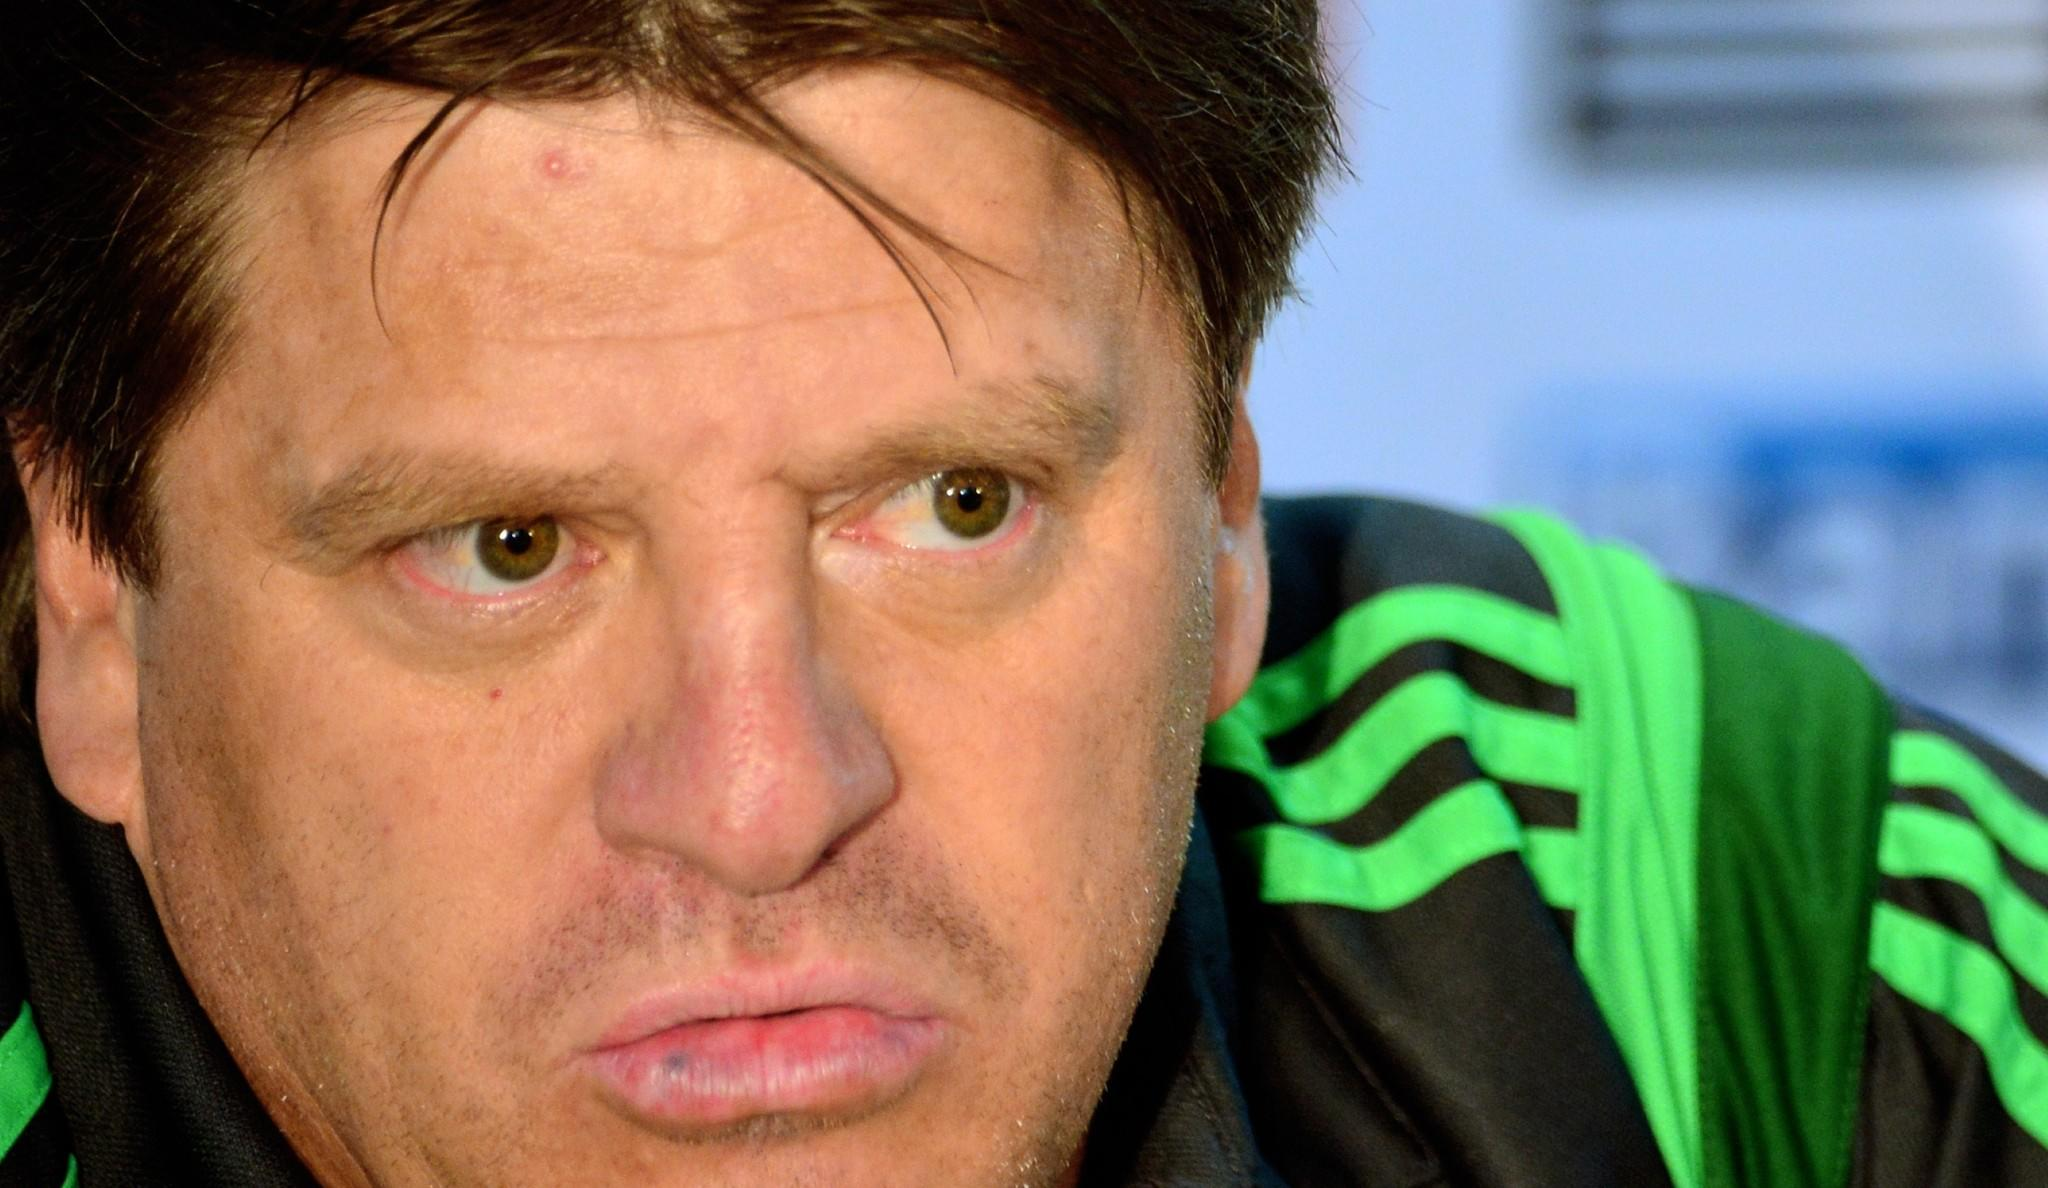 Mexico's coach Miguel Herrera speaks during a press conference before a training session at the Rei Pele Training Center in Santos, Sao Paulo, Brazil on June 20, 2014 during the 2014 FIFA World Cup in Brazil.